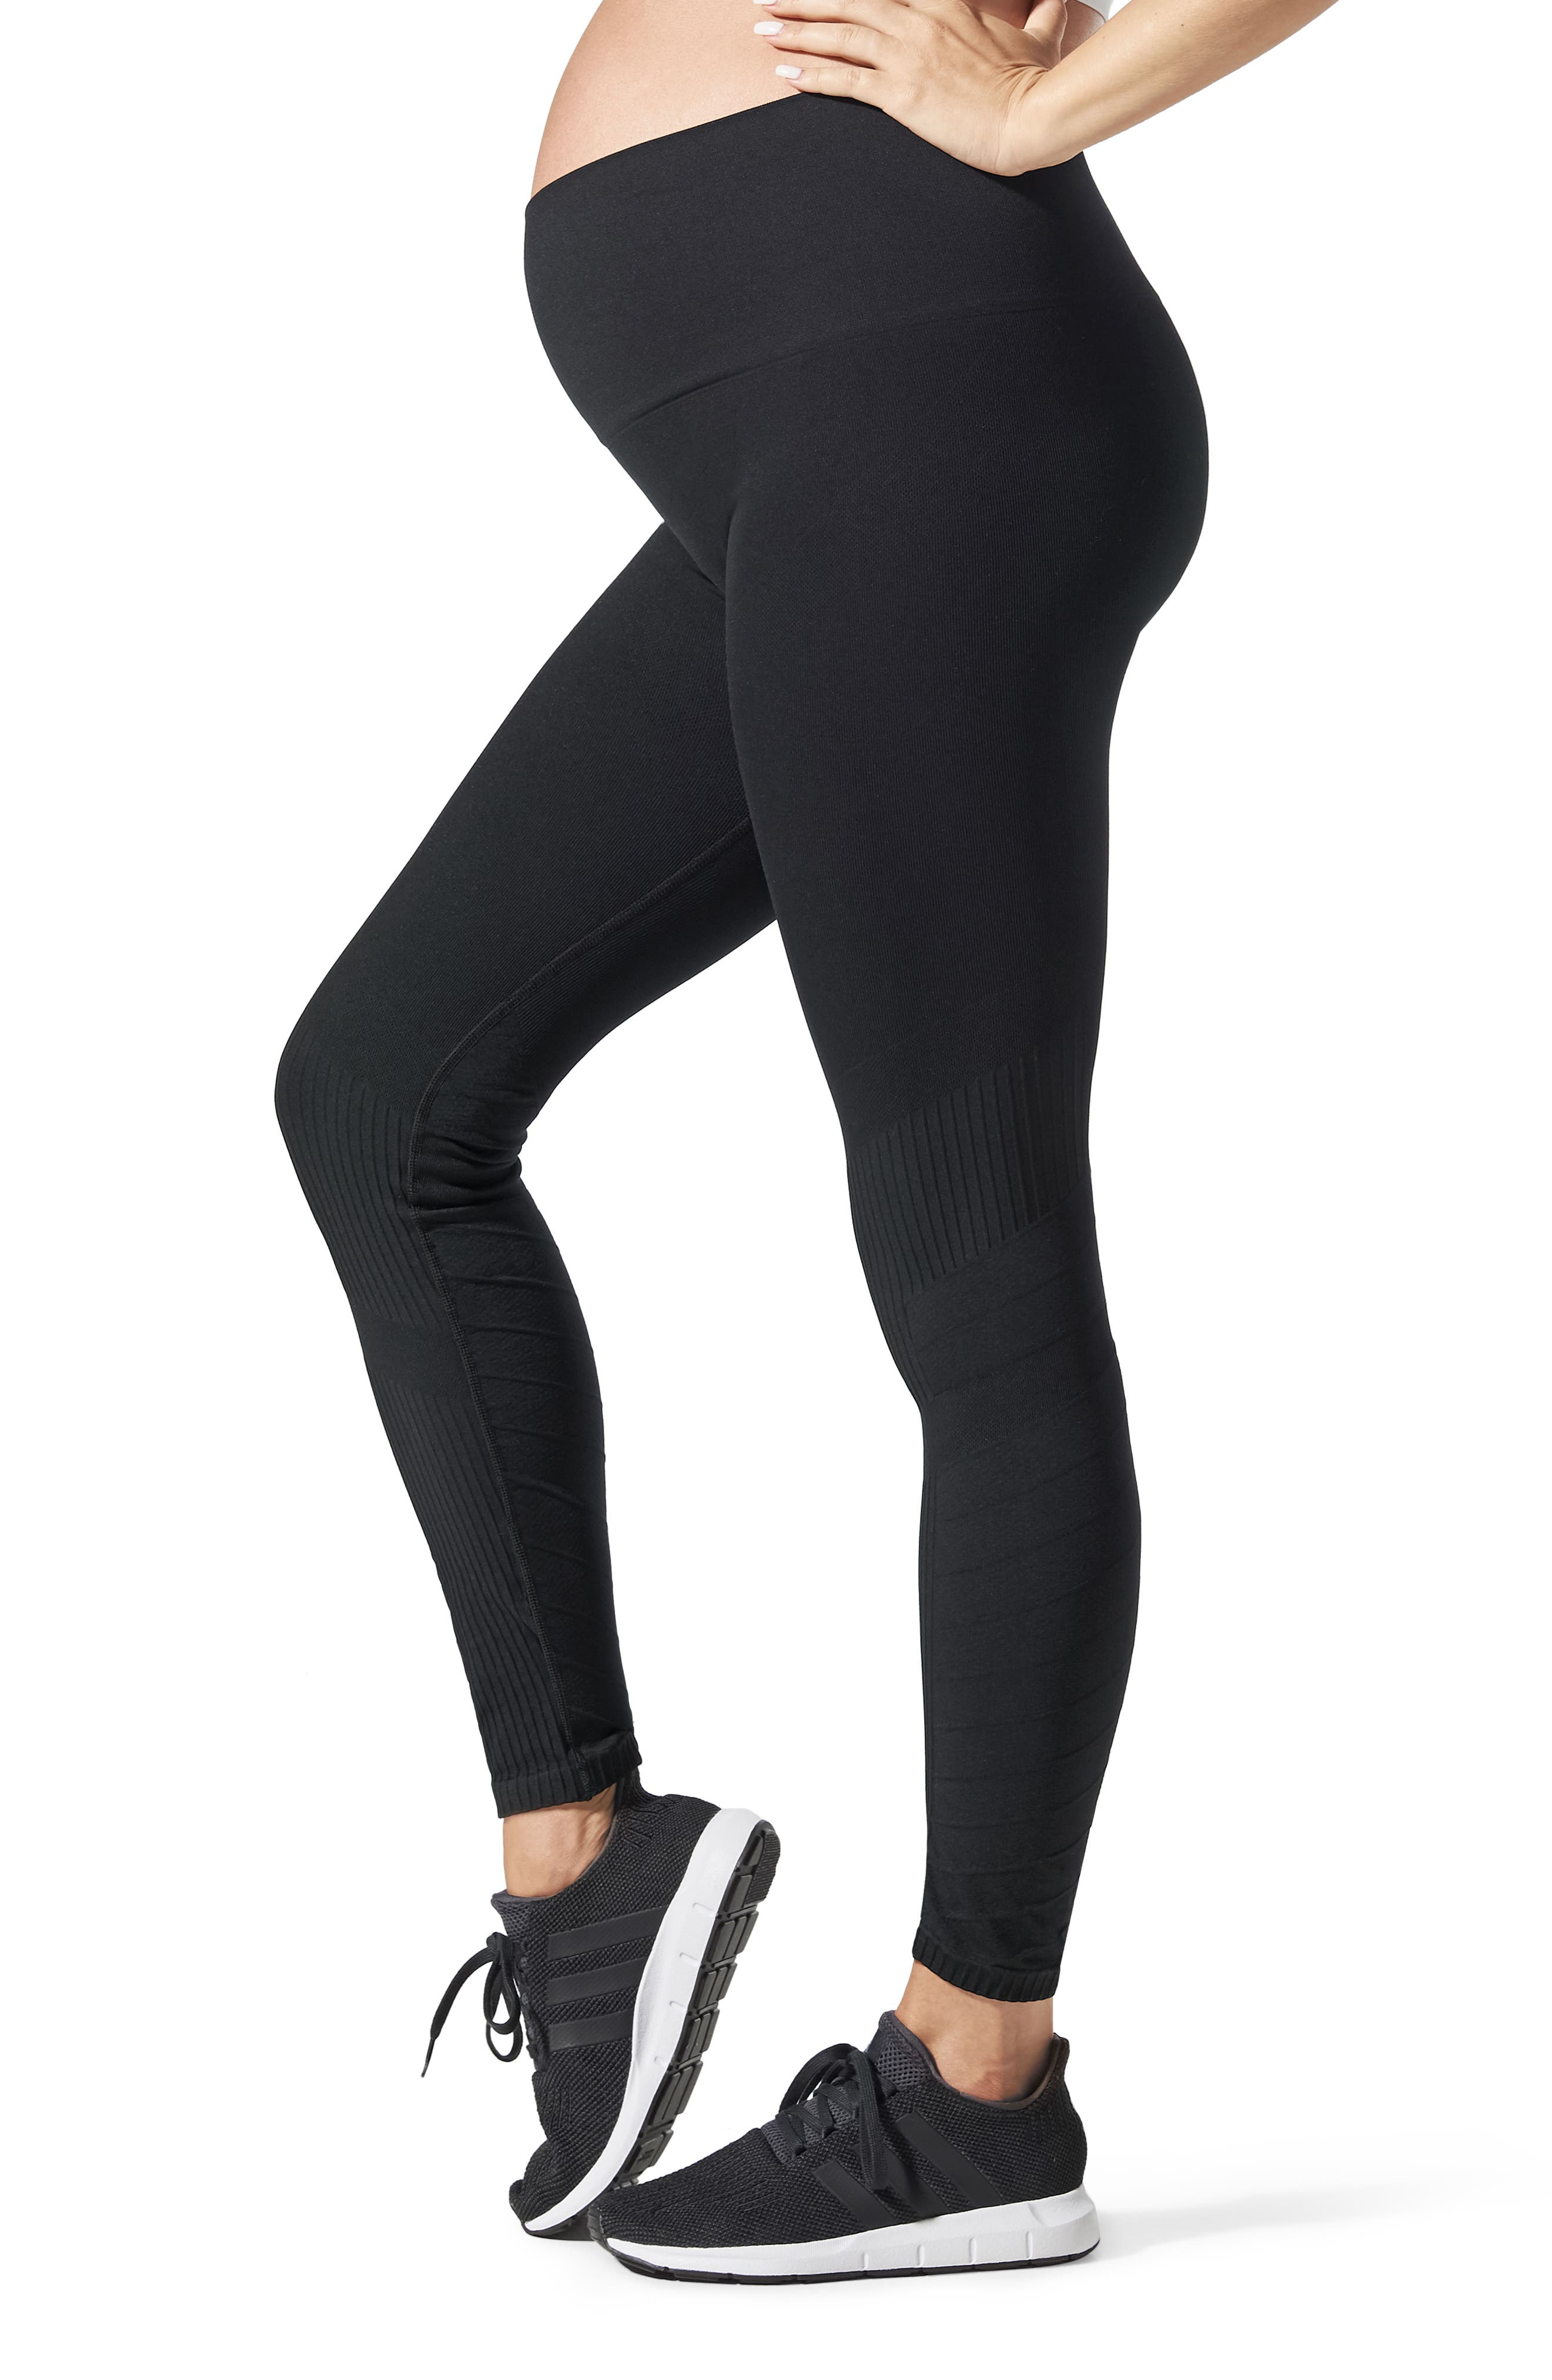 Blanqi Sportsupport Hipster Contour Support Maternity/postpartum Leggings, Black